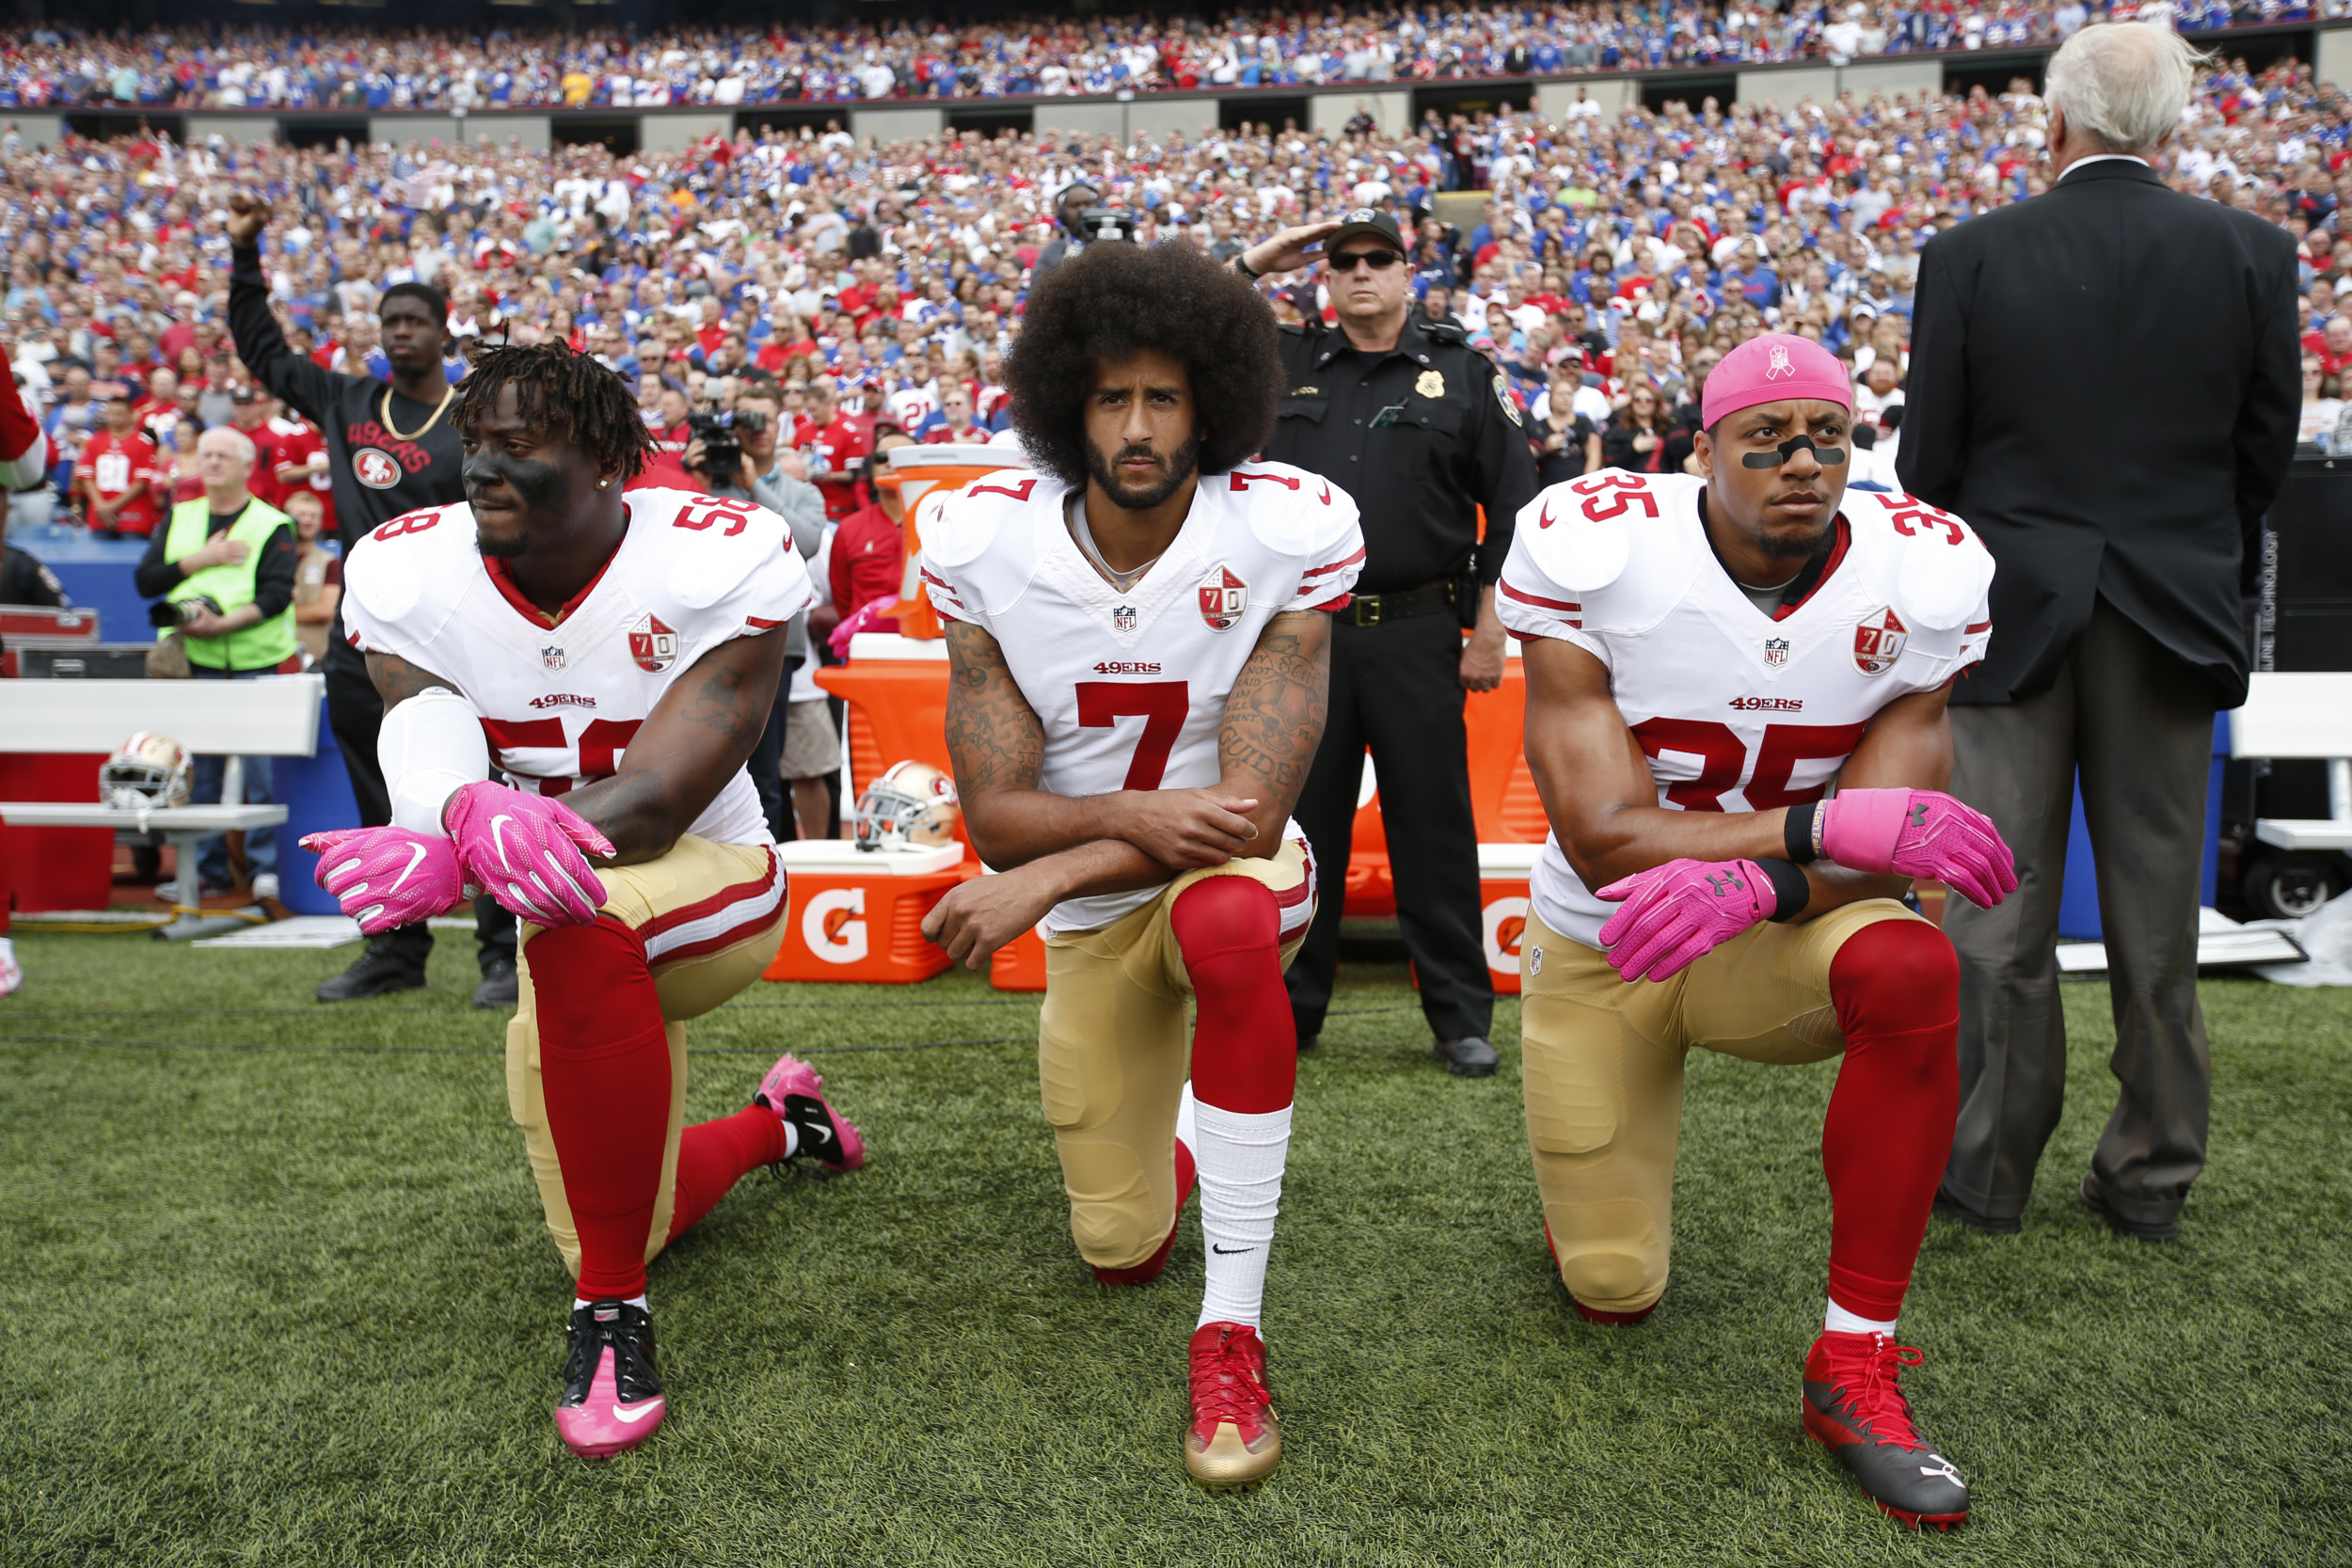 roger-goodell-says-nfl-was-wrong-encourages-players-to-speak-out-and-peacefully-protest-2